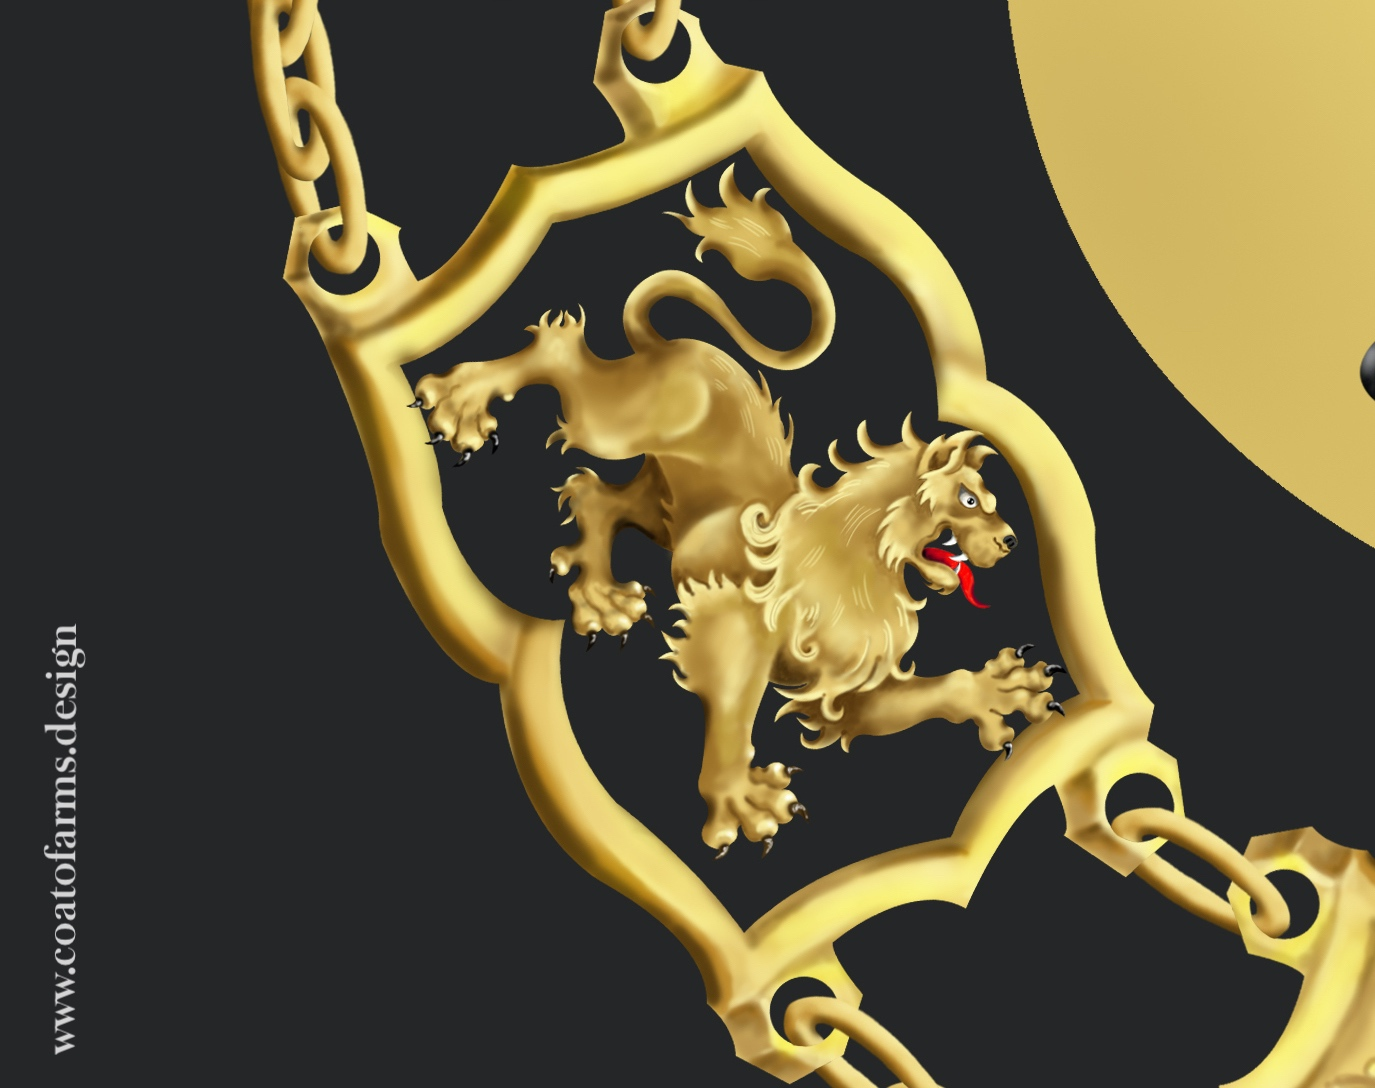 Coat of arms (family crest) I designed for an attorney family from Austria detail 1